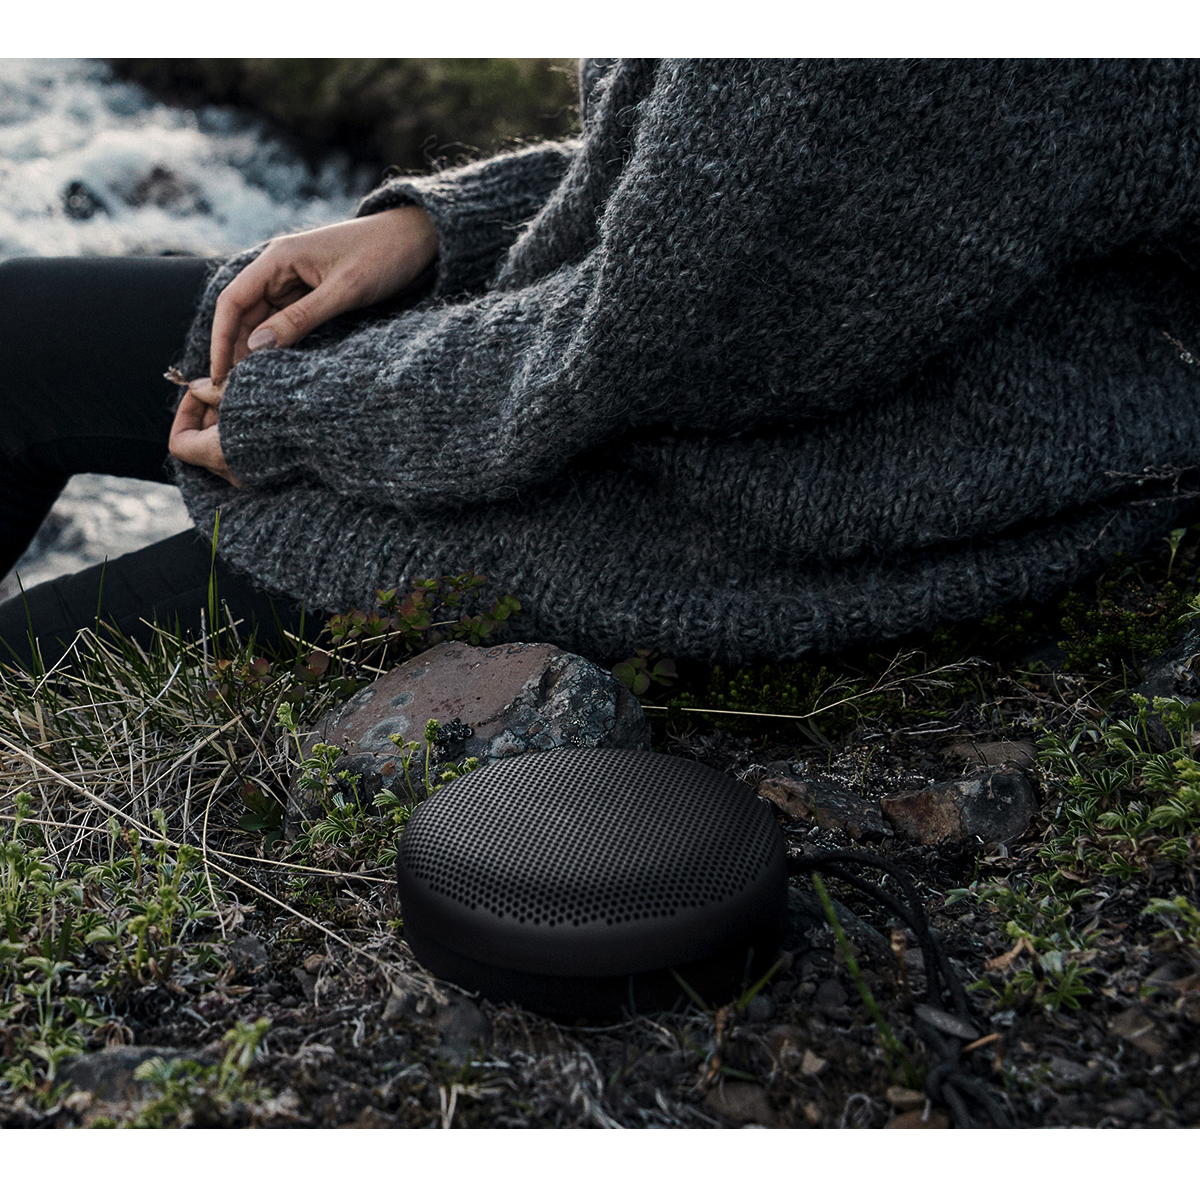 Bang & Olufsen Beoplay A1 Portable Bluetooth Speaker - AVStore.in